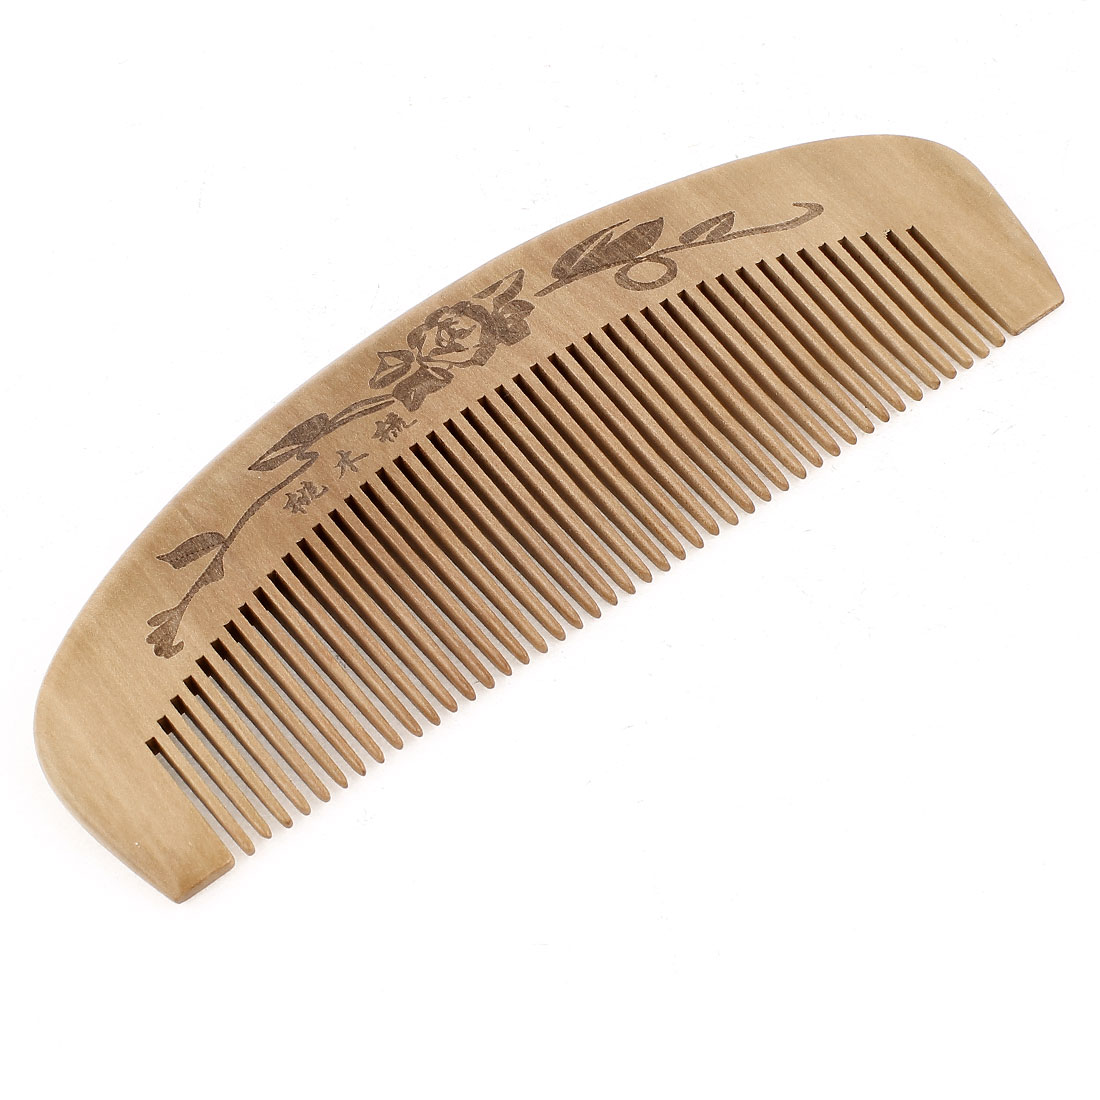 "6.3"" Length Handwork Natural Carved Wooden Bush Hair Care Comb"